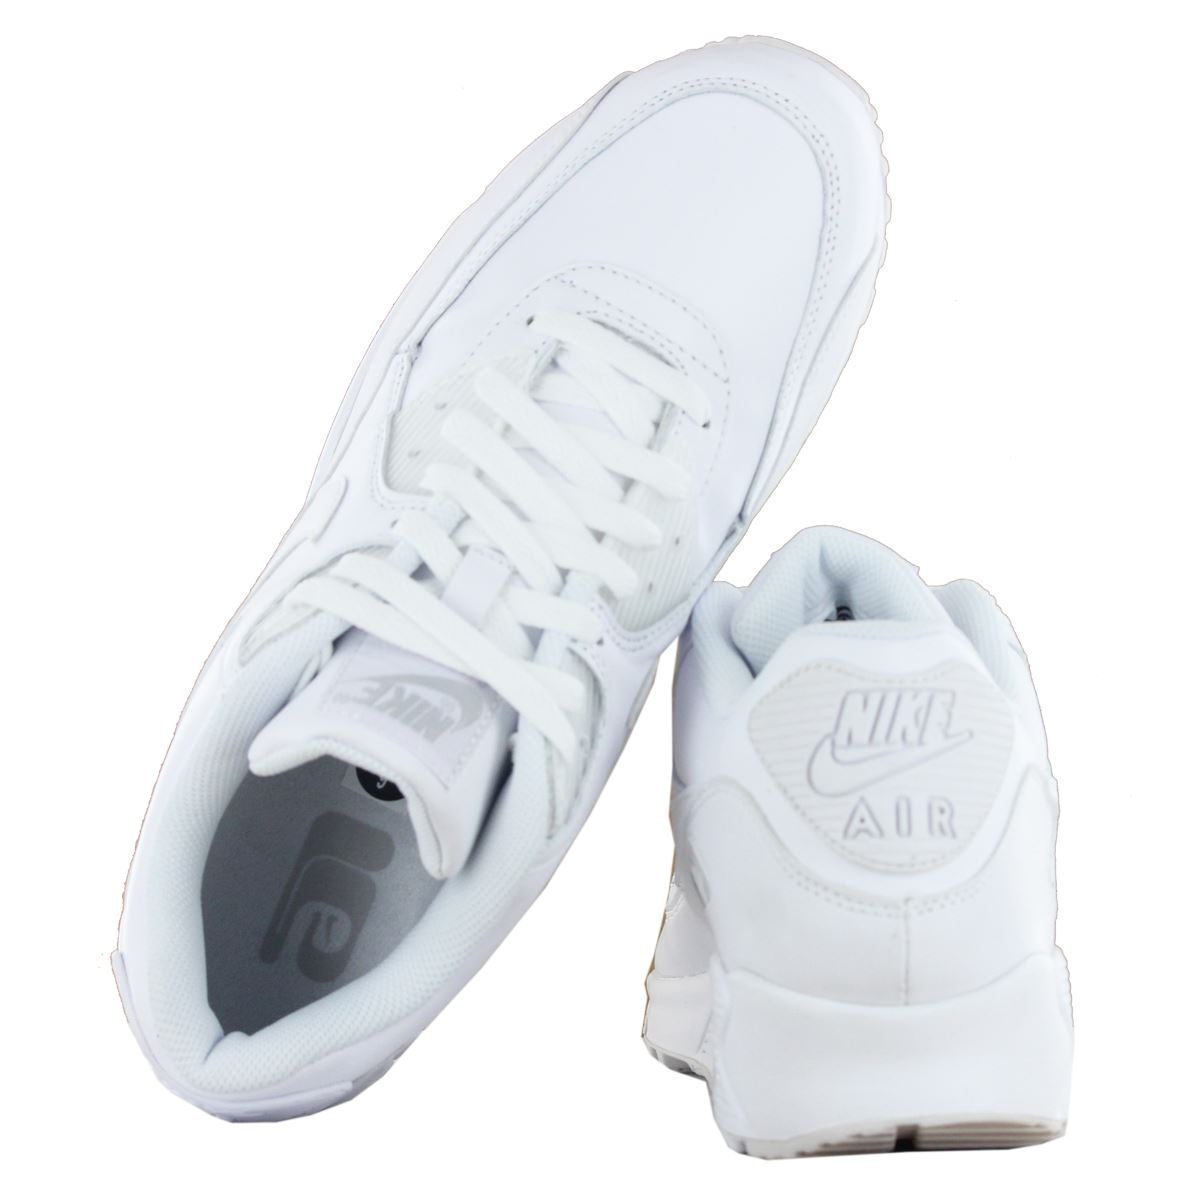 lowest price c555b dacc1 Nike Air Max 90 Trainers White